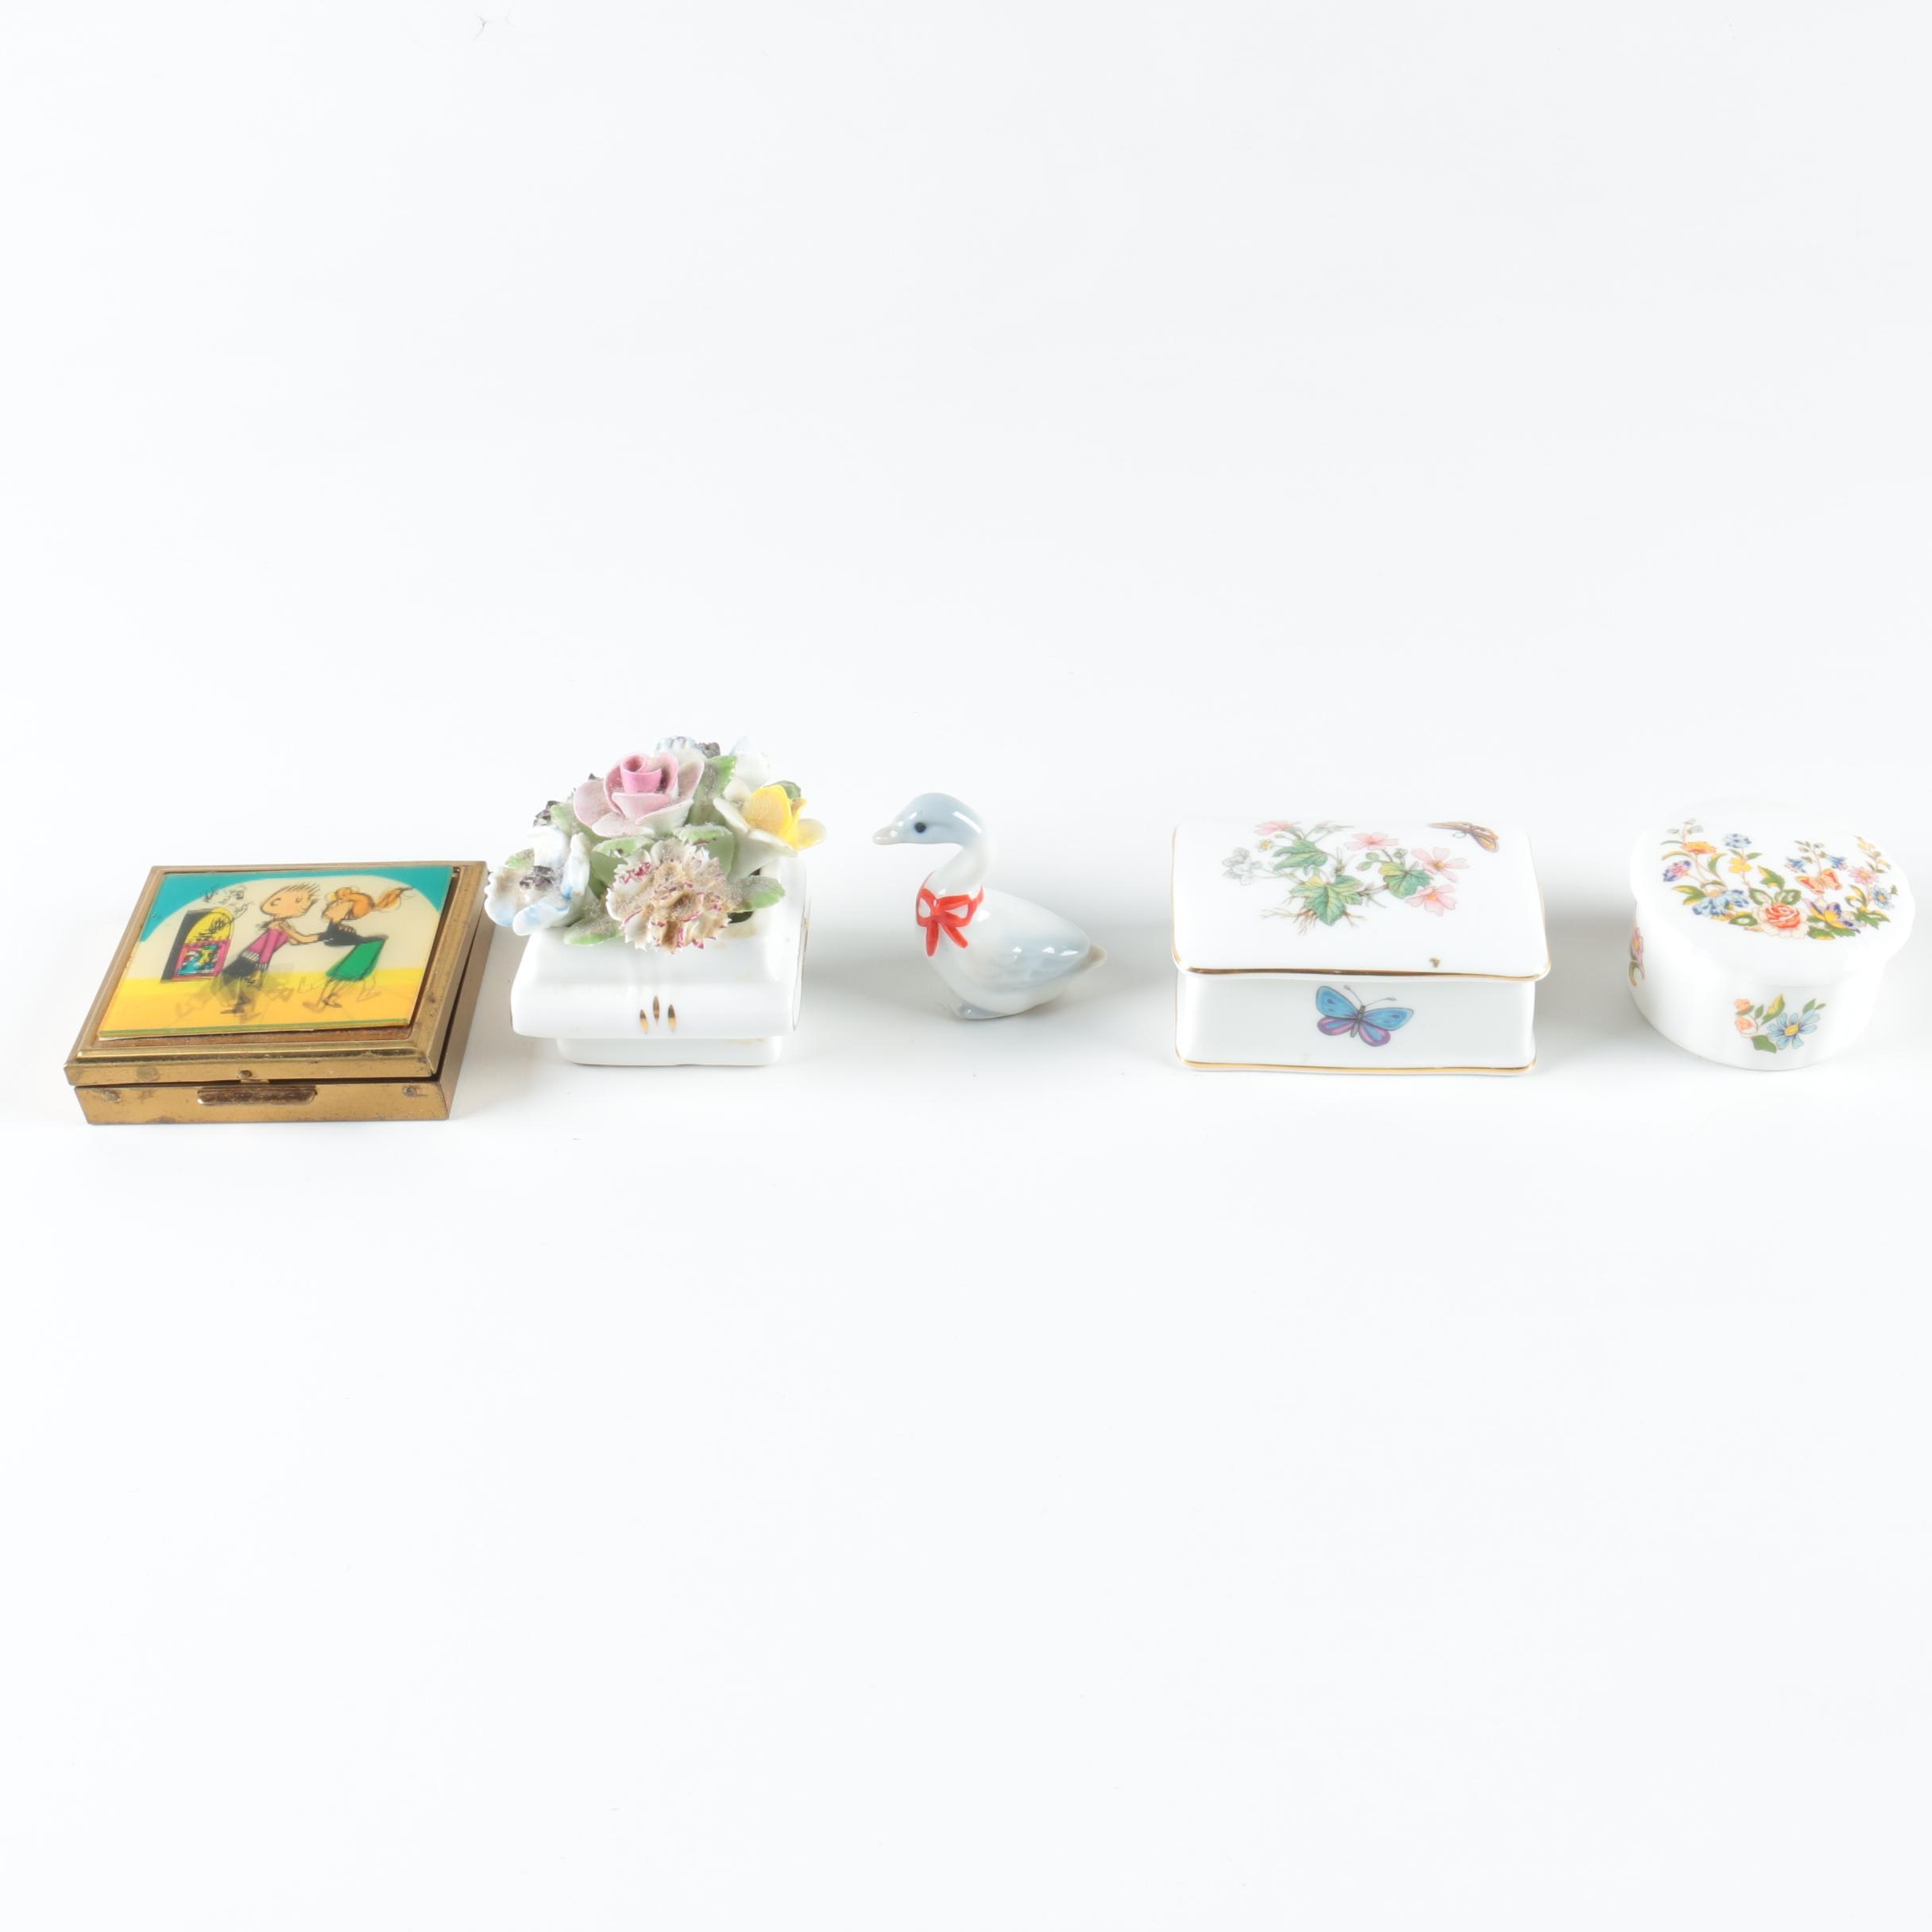 Porcelain Trinket Boxes and Figurine plus Vintage Compact